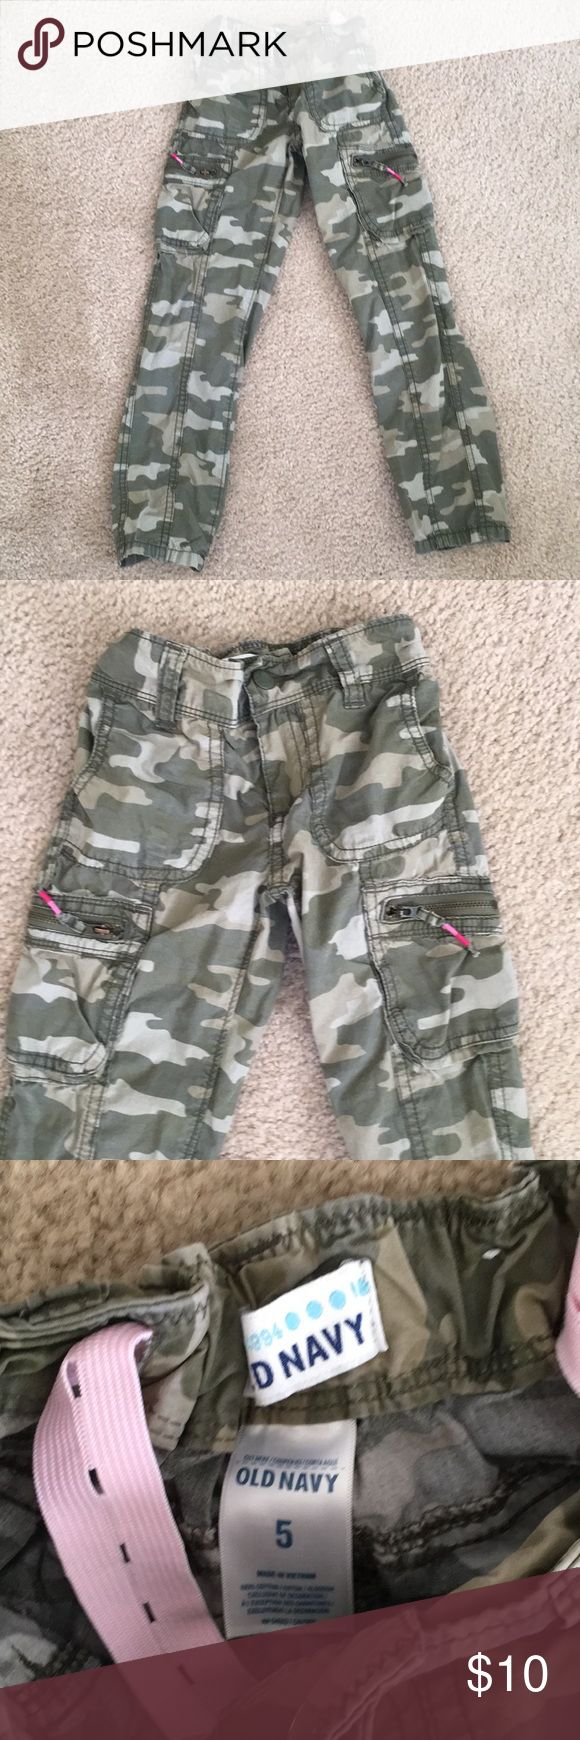 Girls Old Navy camo pants These are adorable!  Camo cargo pants from Old Navy. Decorative pulls on the zippers. Adjustable waist. Size 5. Old Navy Bottoms